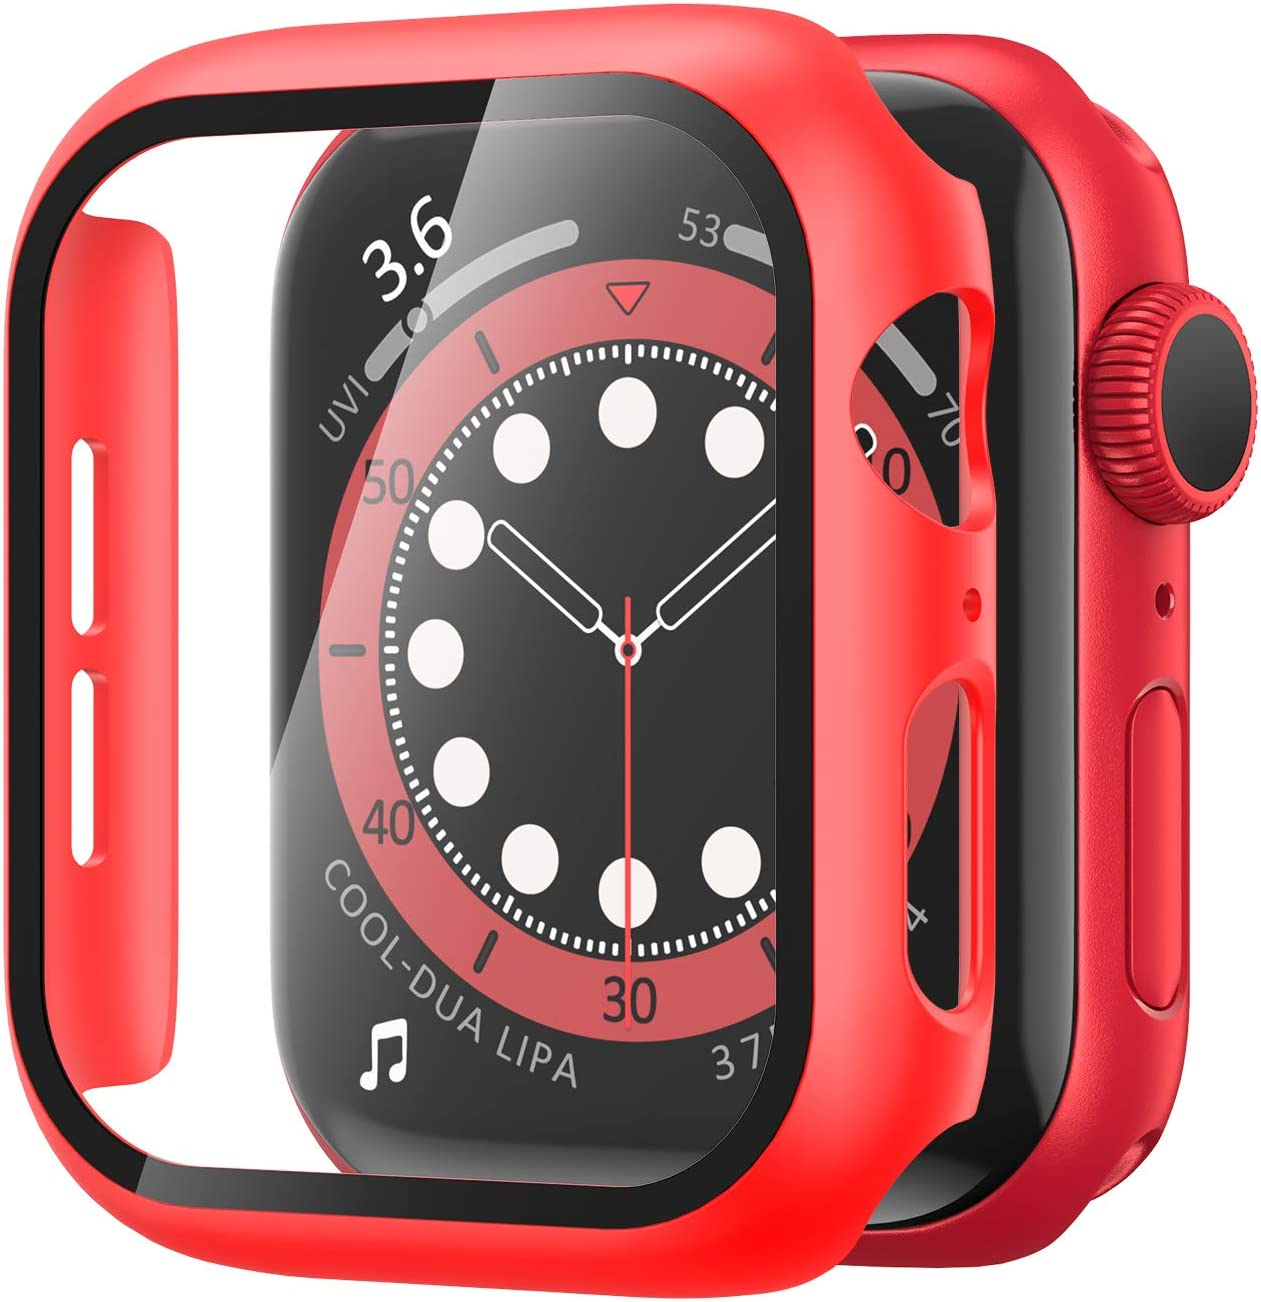 YMHML Case compatible with Apple Watch Series 6 / SE 40mm Built-in Tempered Glass Screen Protector, Hard PC Protector Cover Thin Guard Full Coverage for iWatch 40mm (Red)